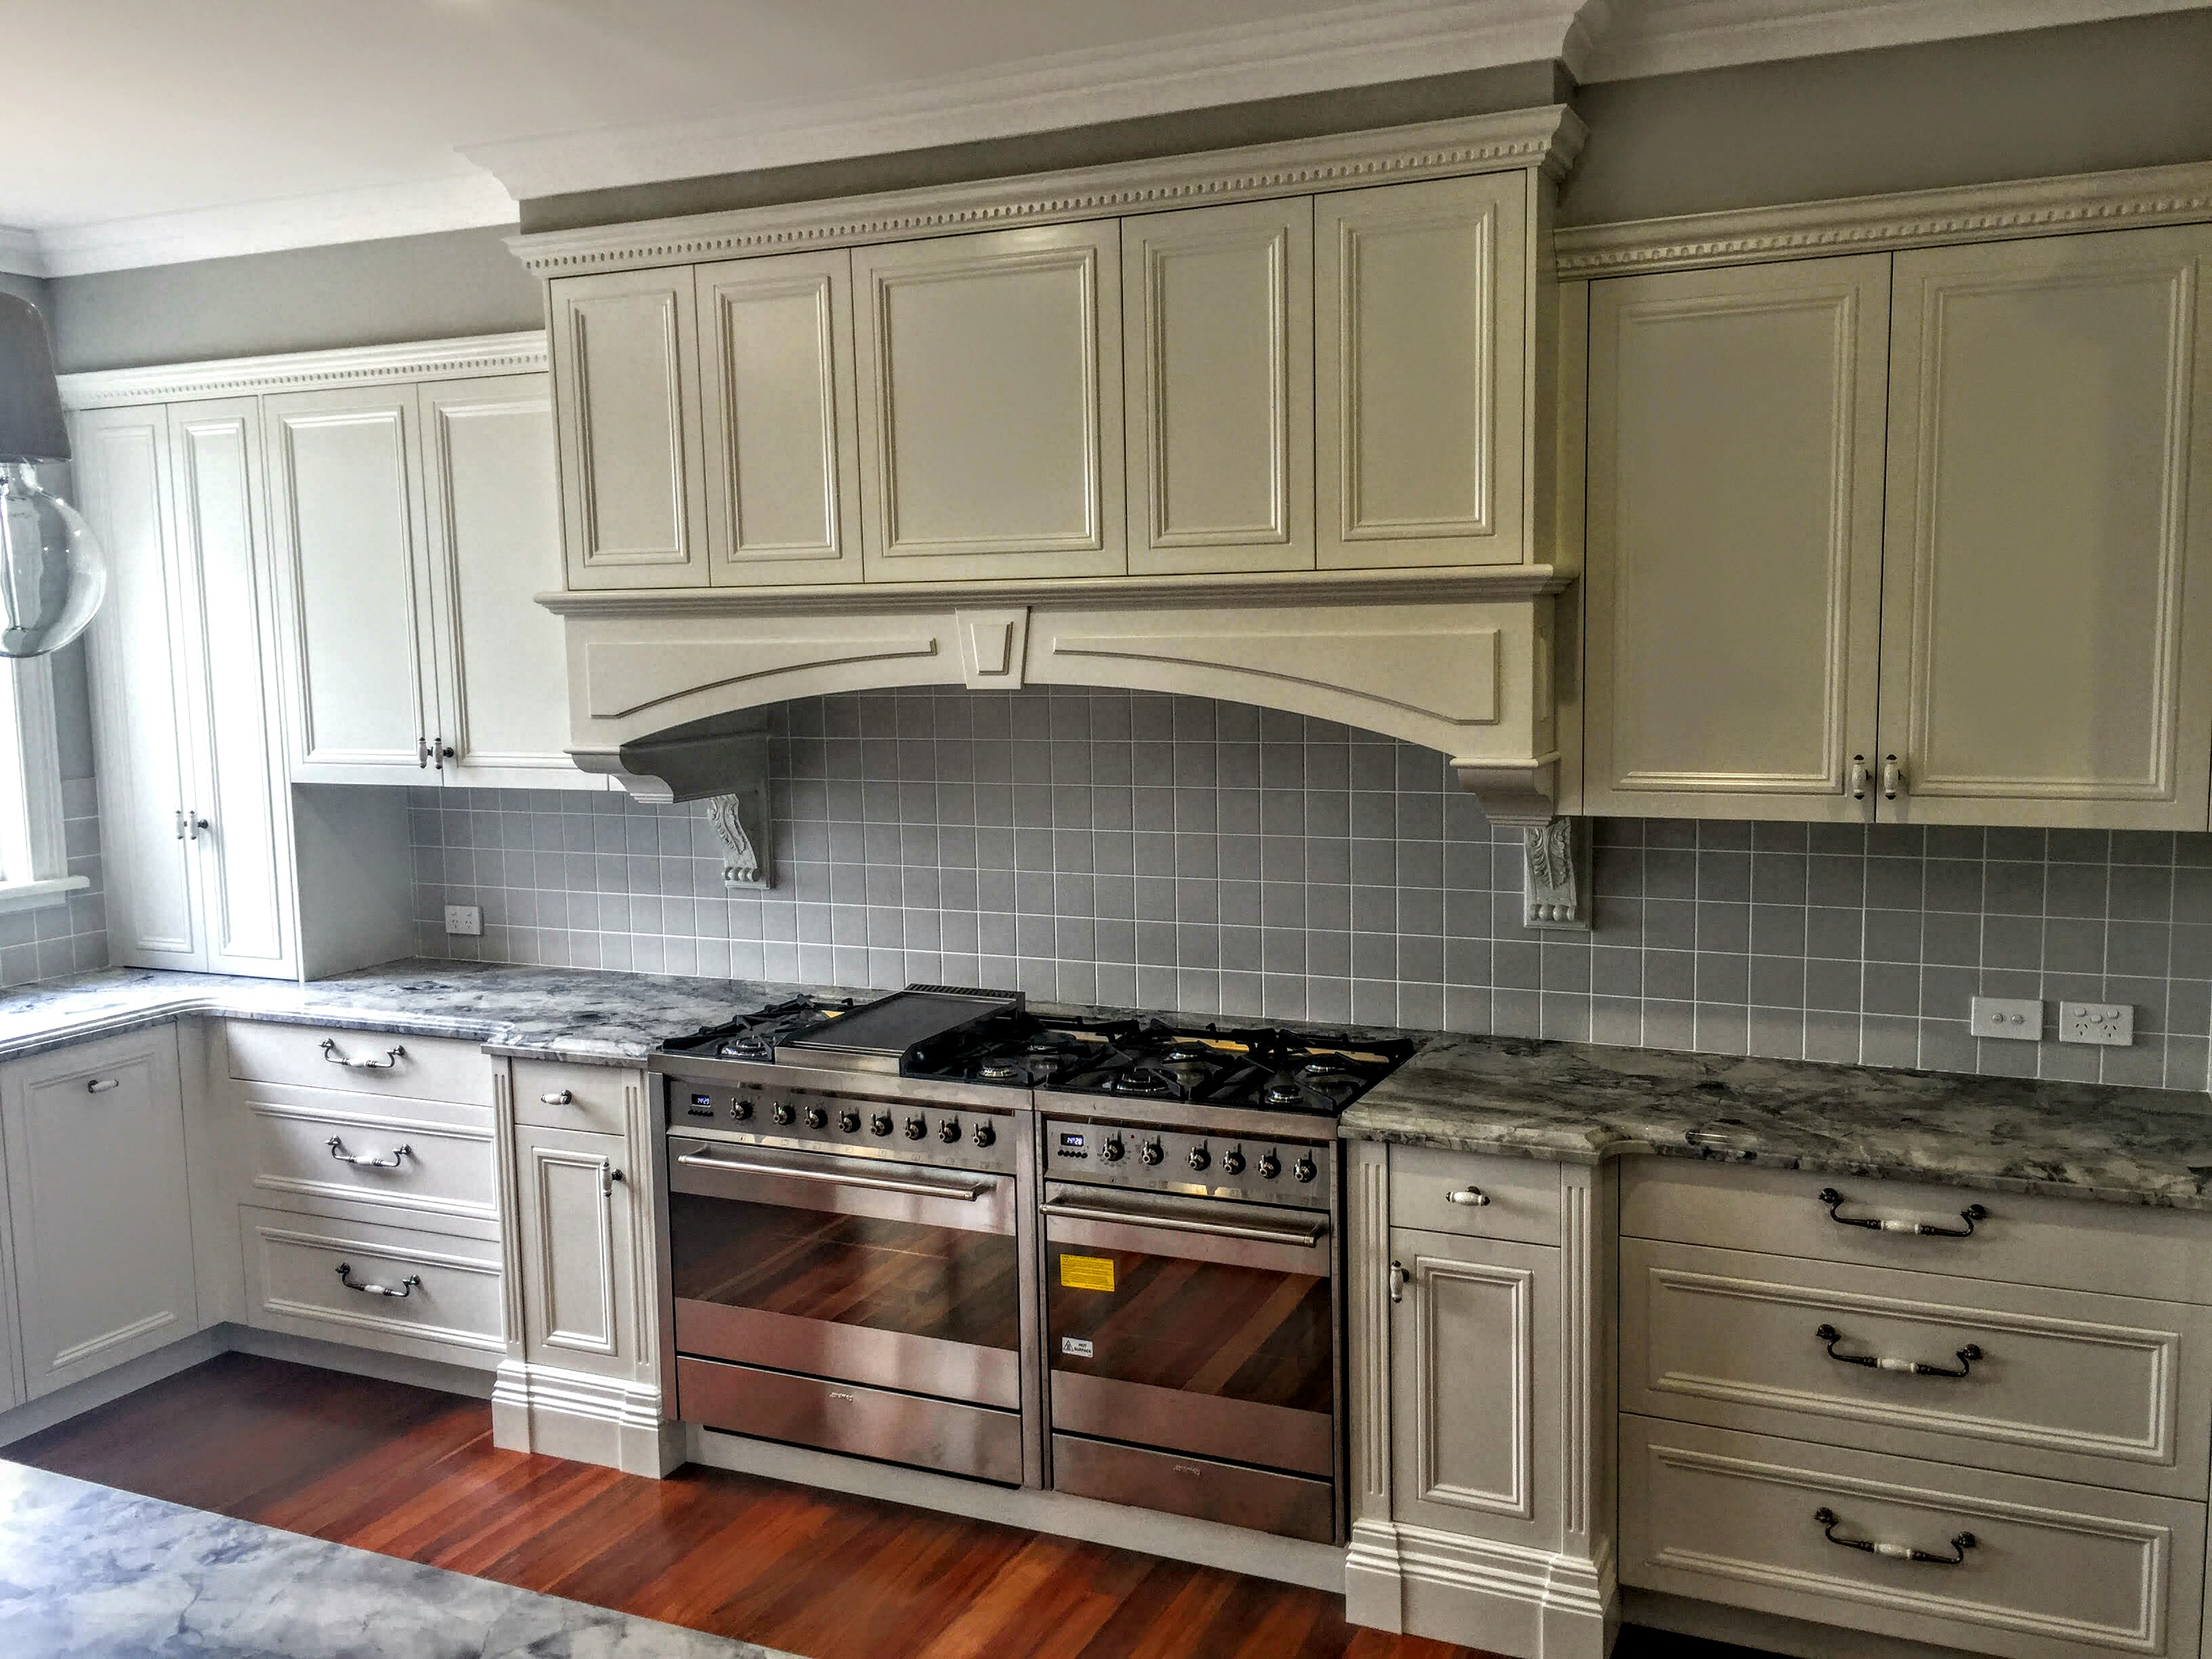 New Kitchen Designs >> French Provincial Kitchens | DGS Kitchens - Windsor, NSW